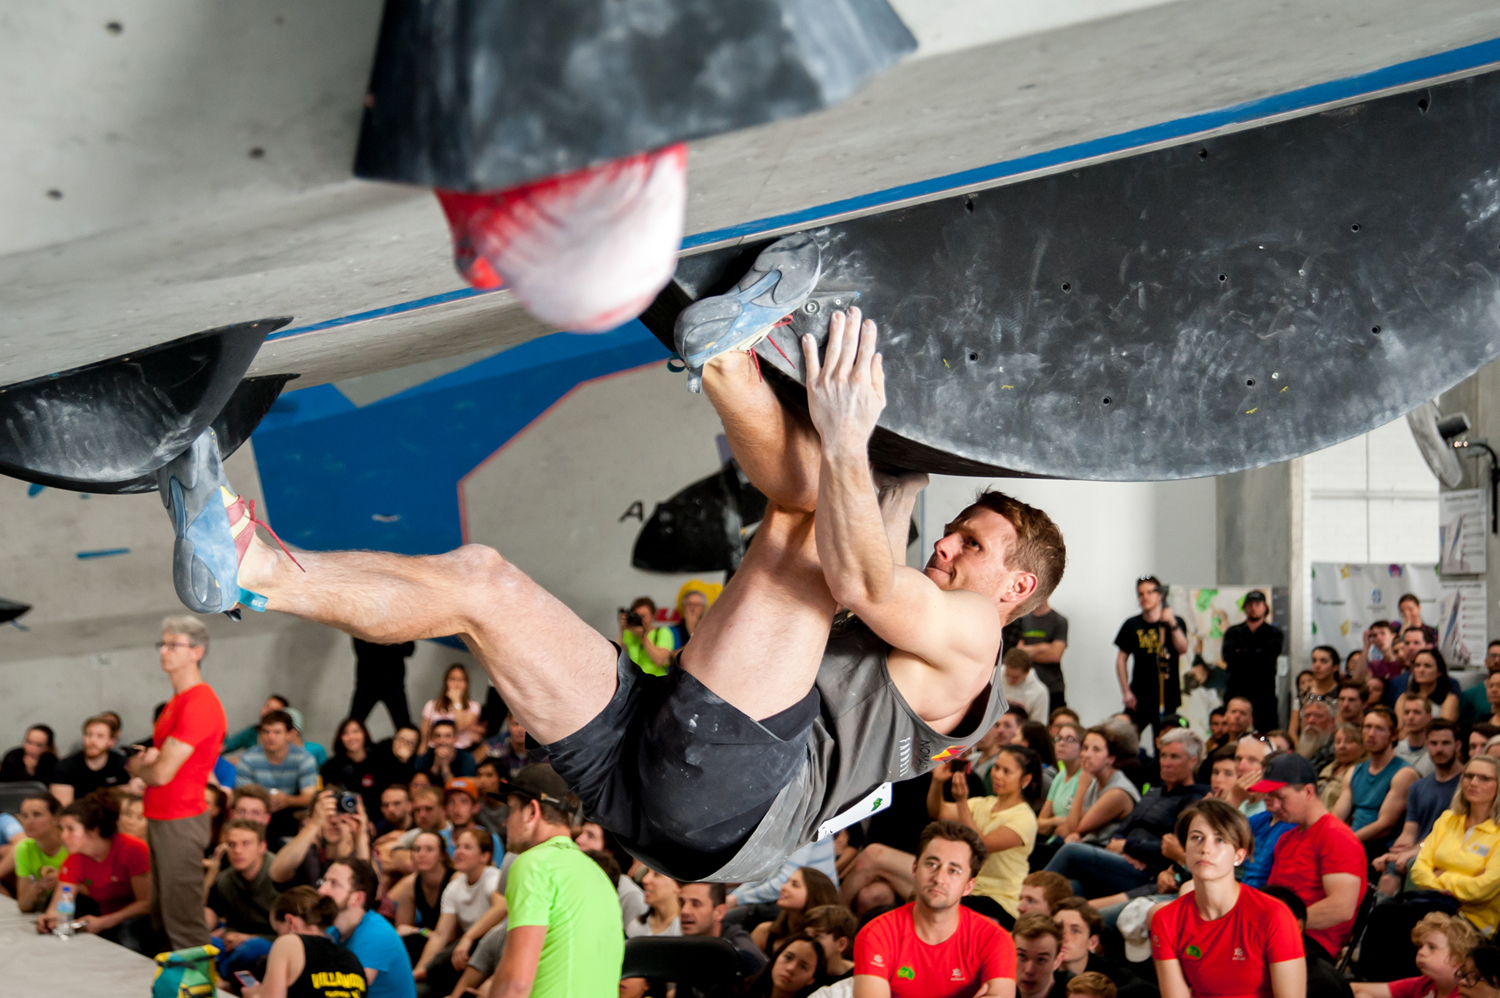 Climbing Rocks Professional Climbing Photography Competition Open Bouldering Championships 2019 (20)